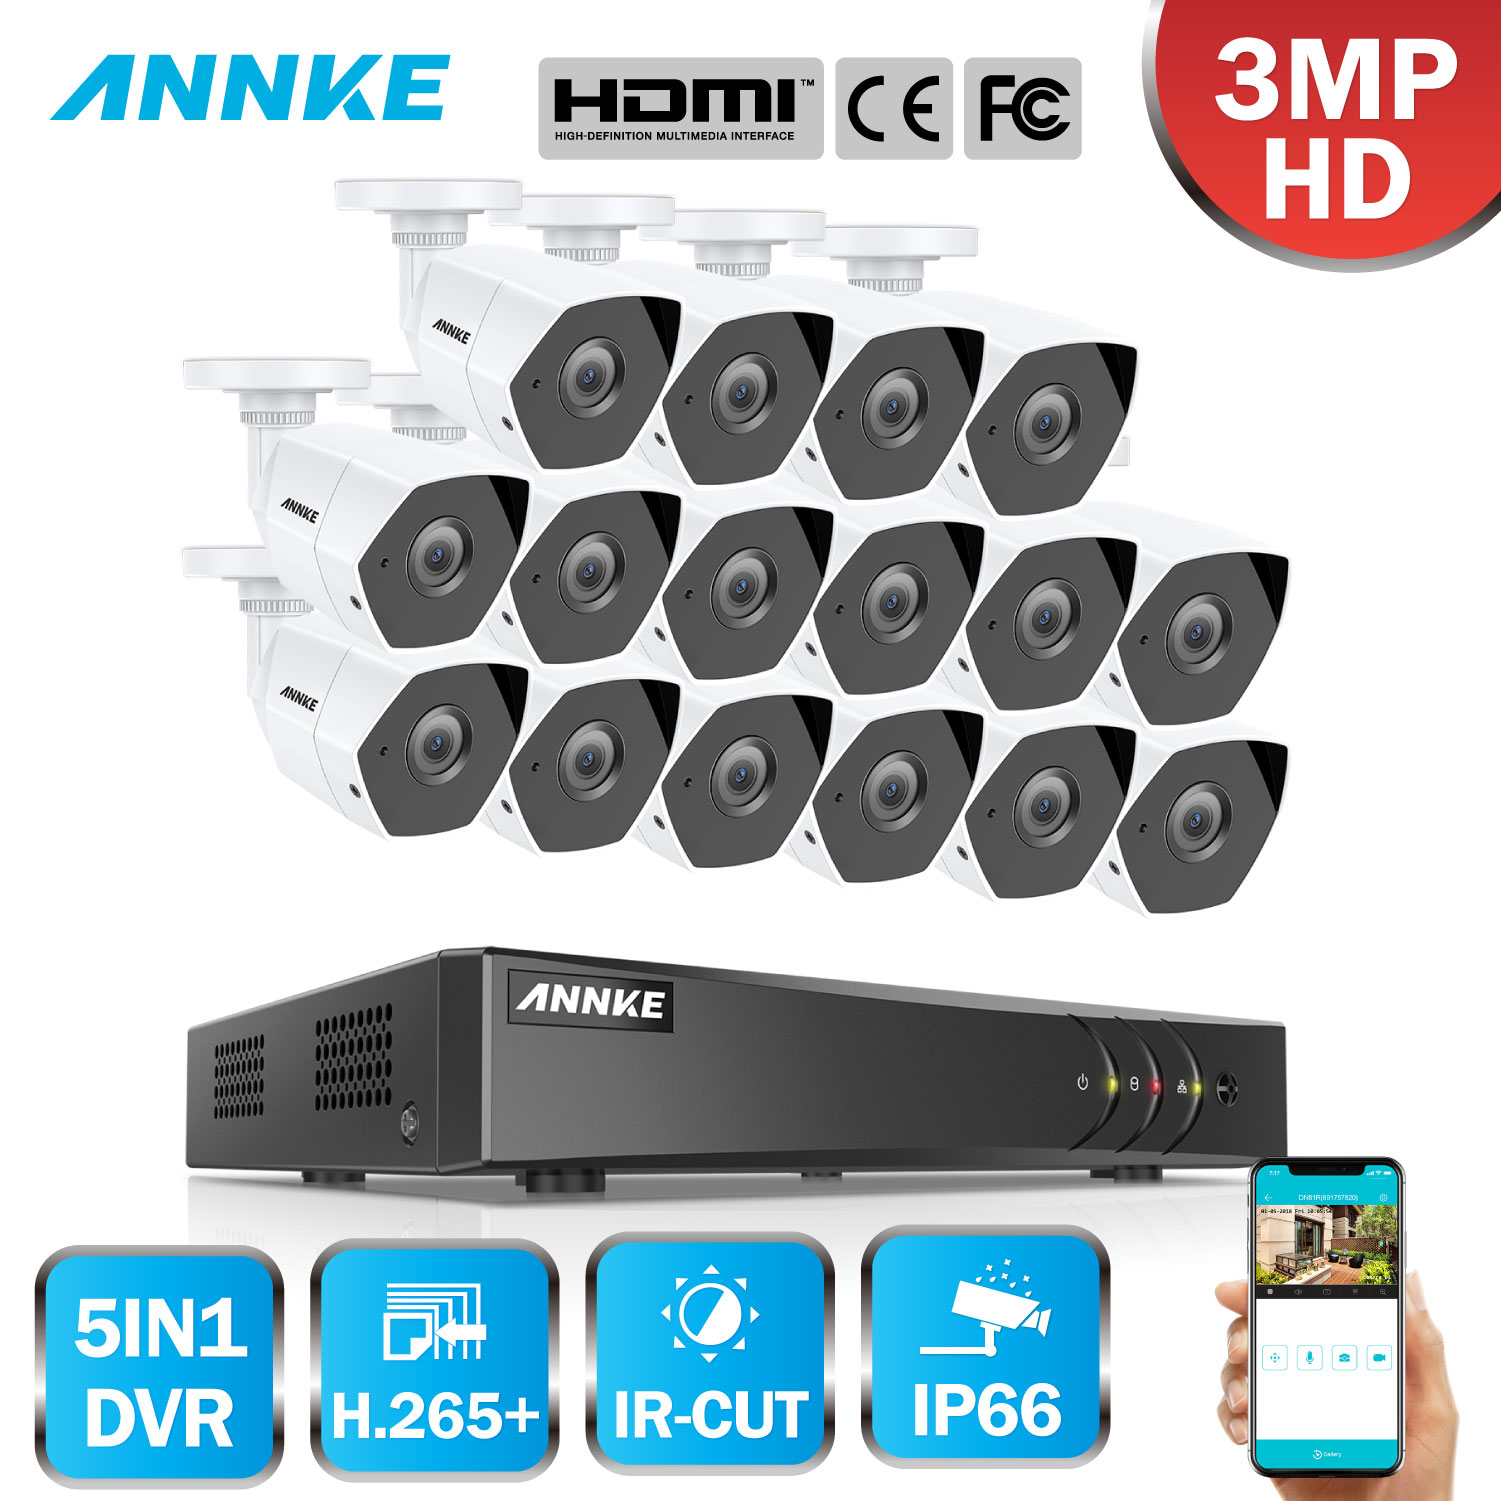 ANNKE FHD 16CH 5in1 3MP CCTV System 16pcs 3MP Security Bullet Weatherproof Camera Smart IR Outdoor 3MP Video Surveillance Kit